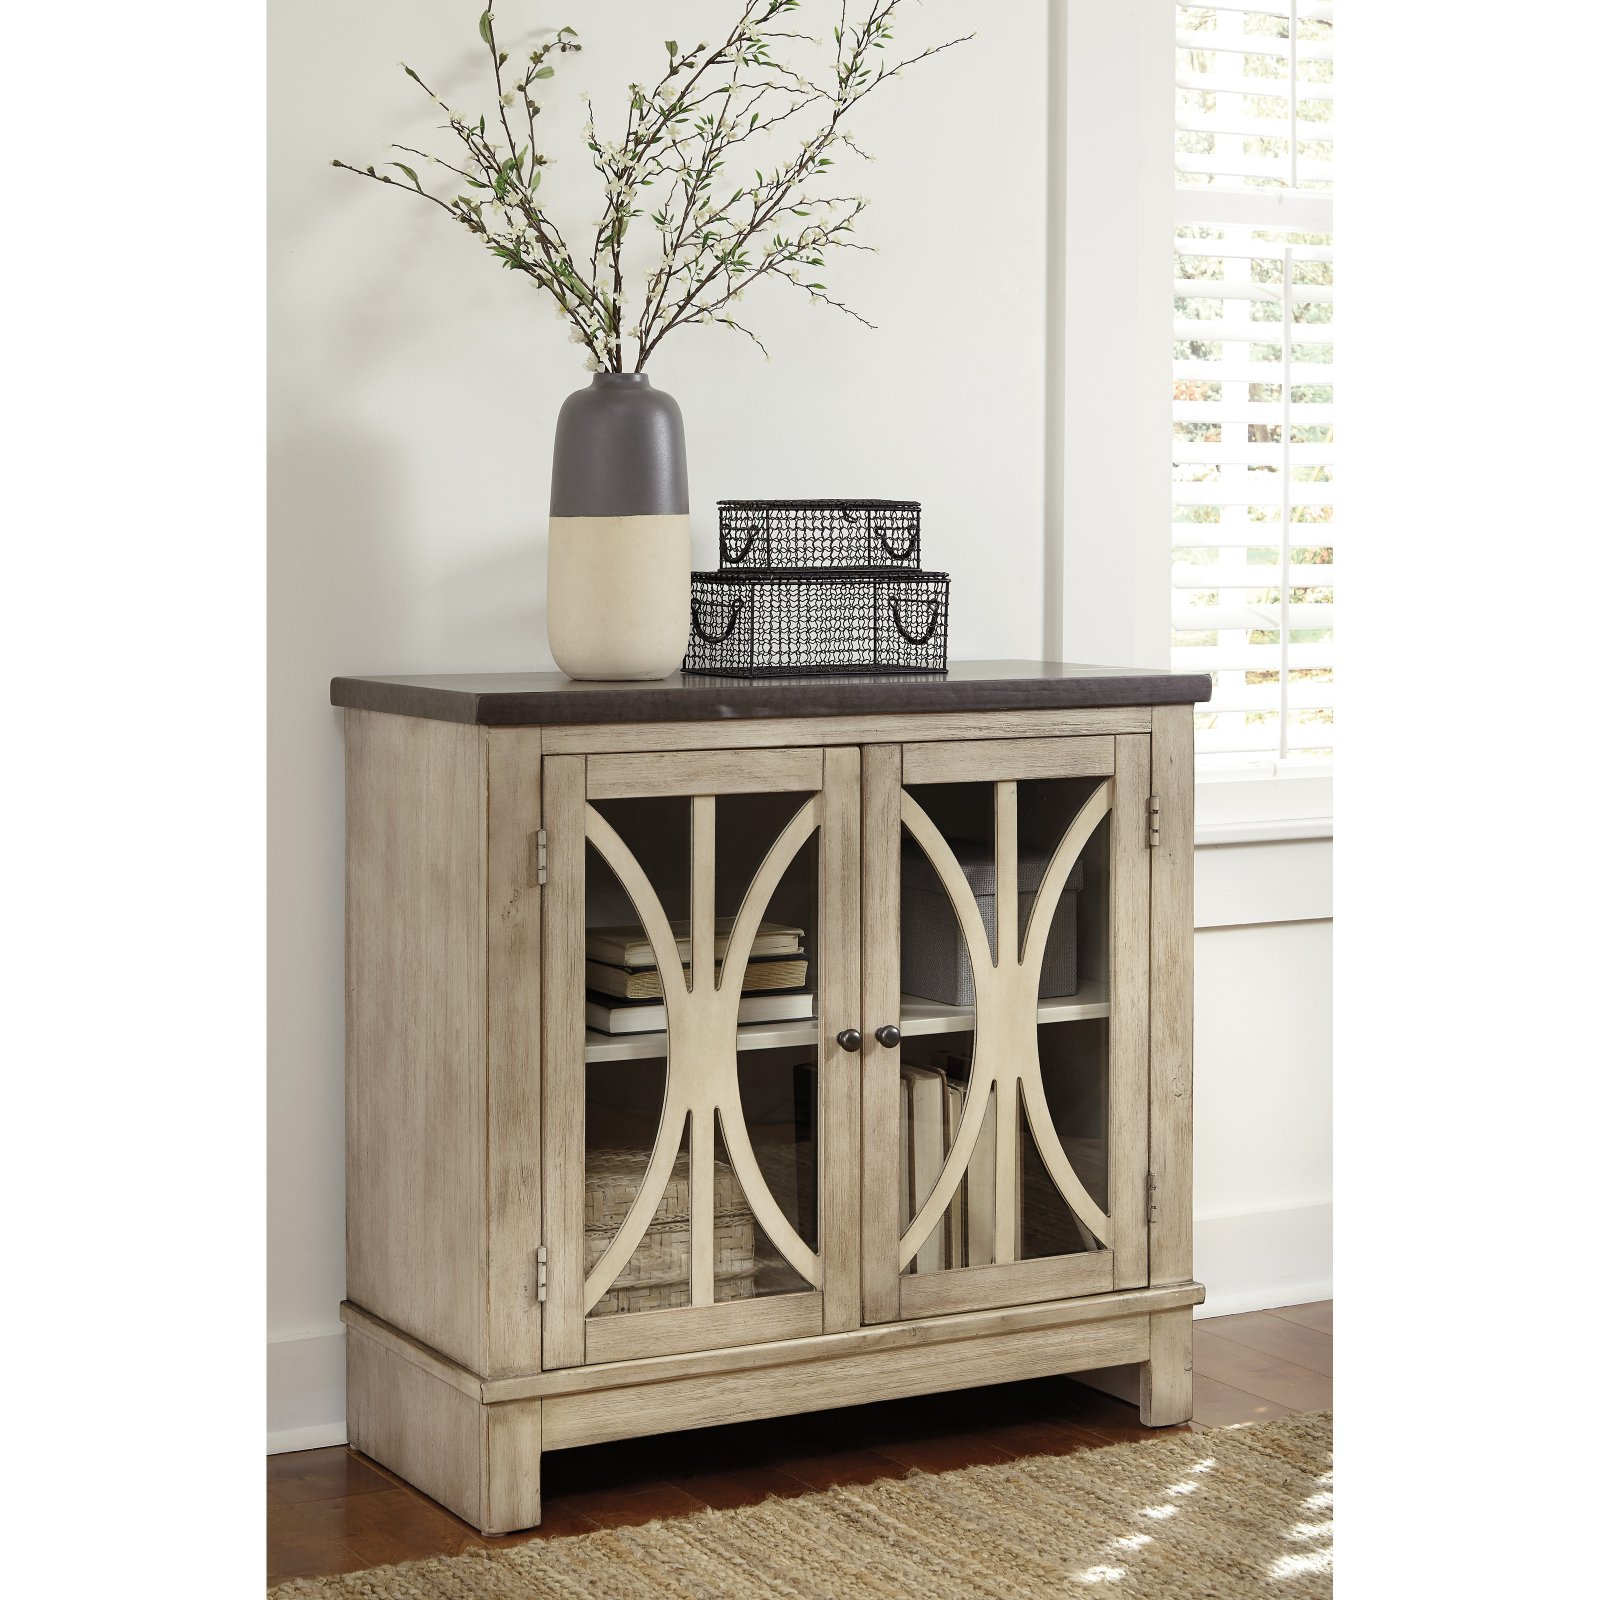 Signature Design by Ashley Vennilux Decorative Chest